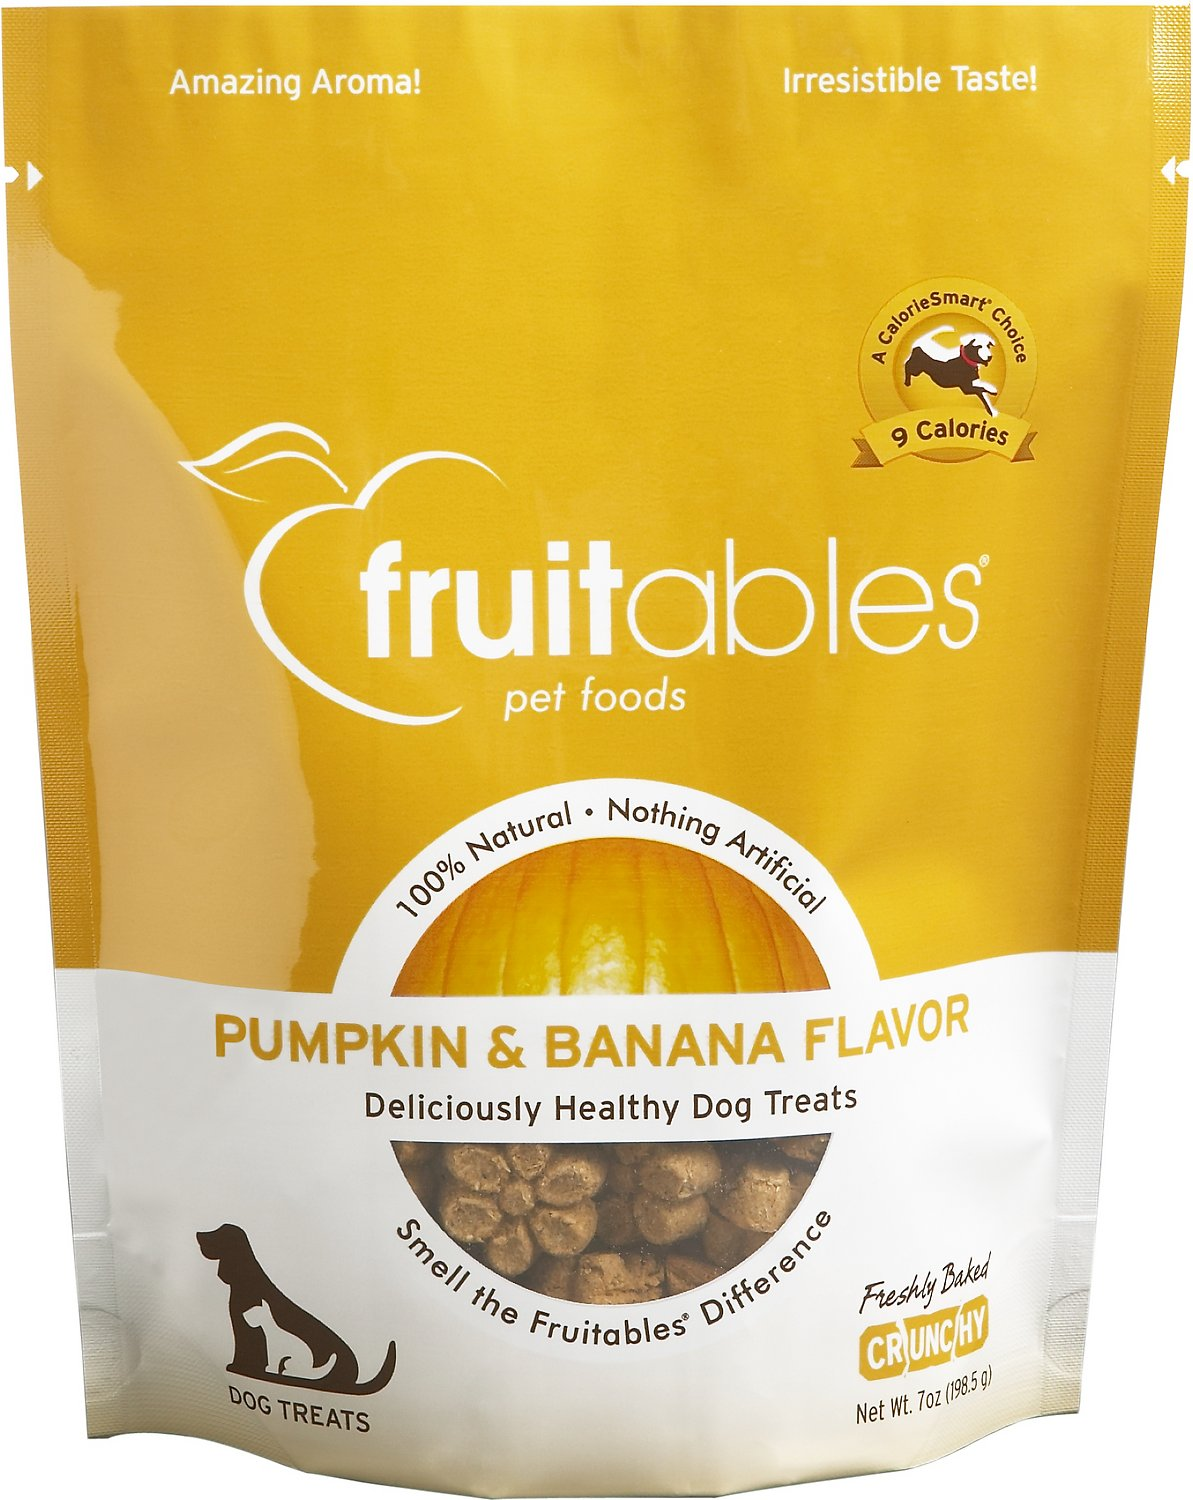 Fruitables Pumpkin & Banana Flavor Crunchy Dog Treats, 7-oz bag